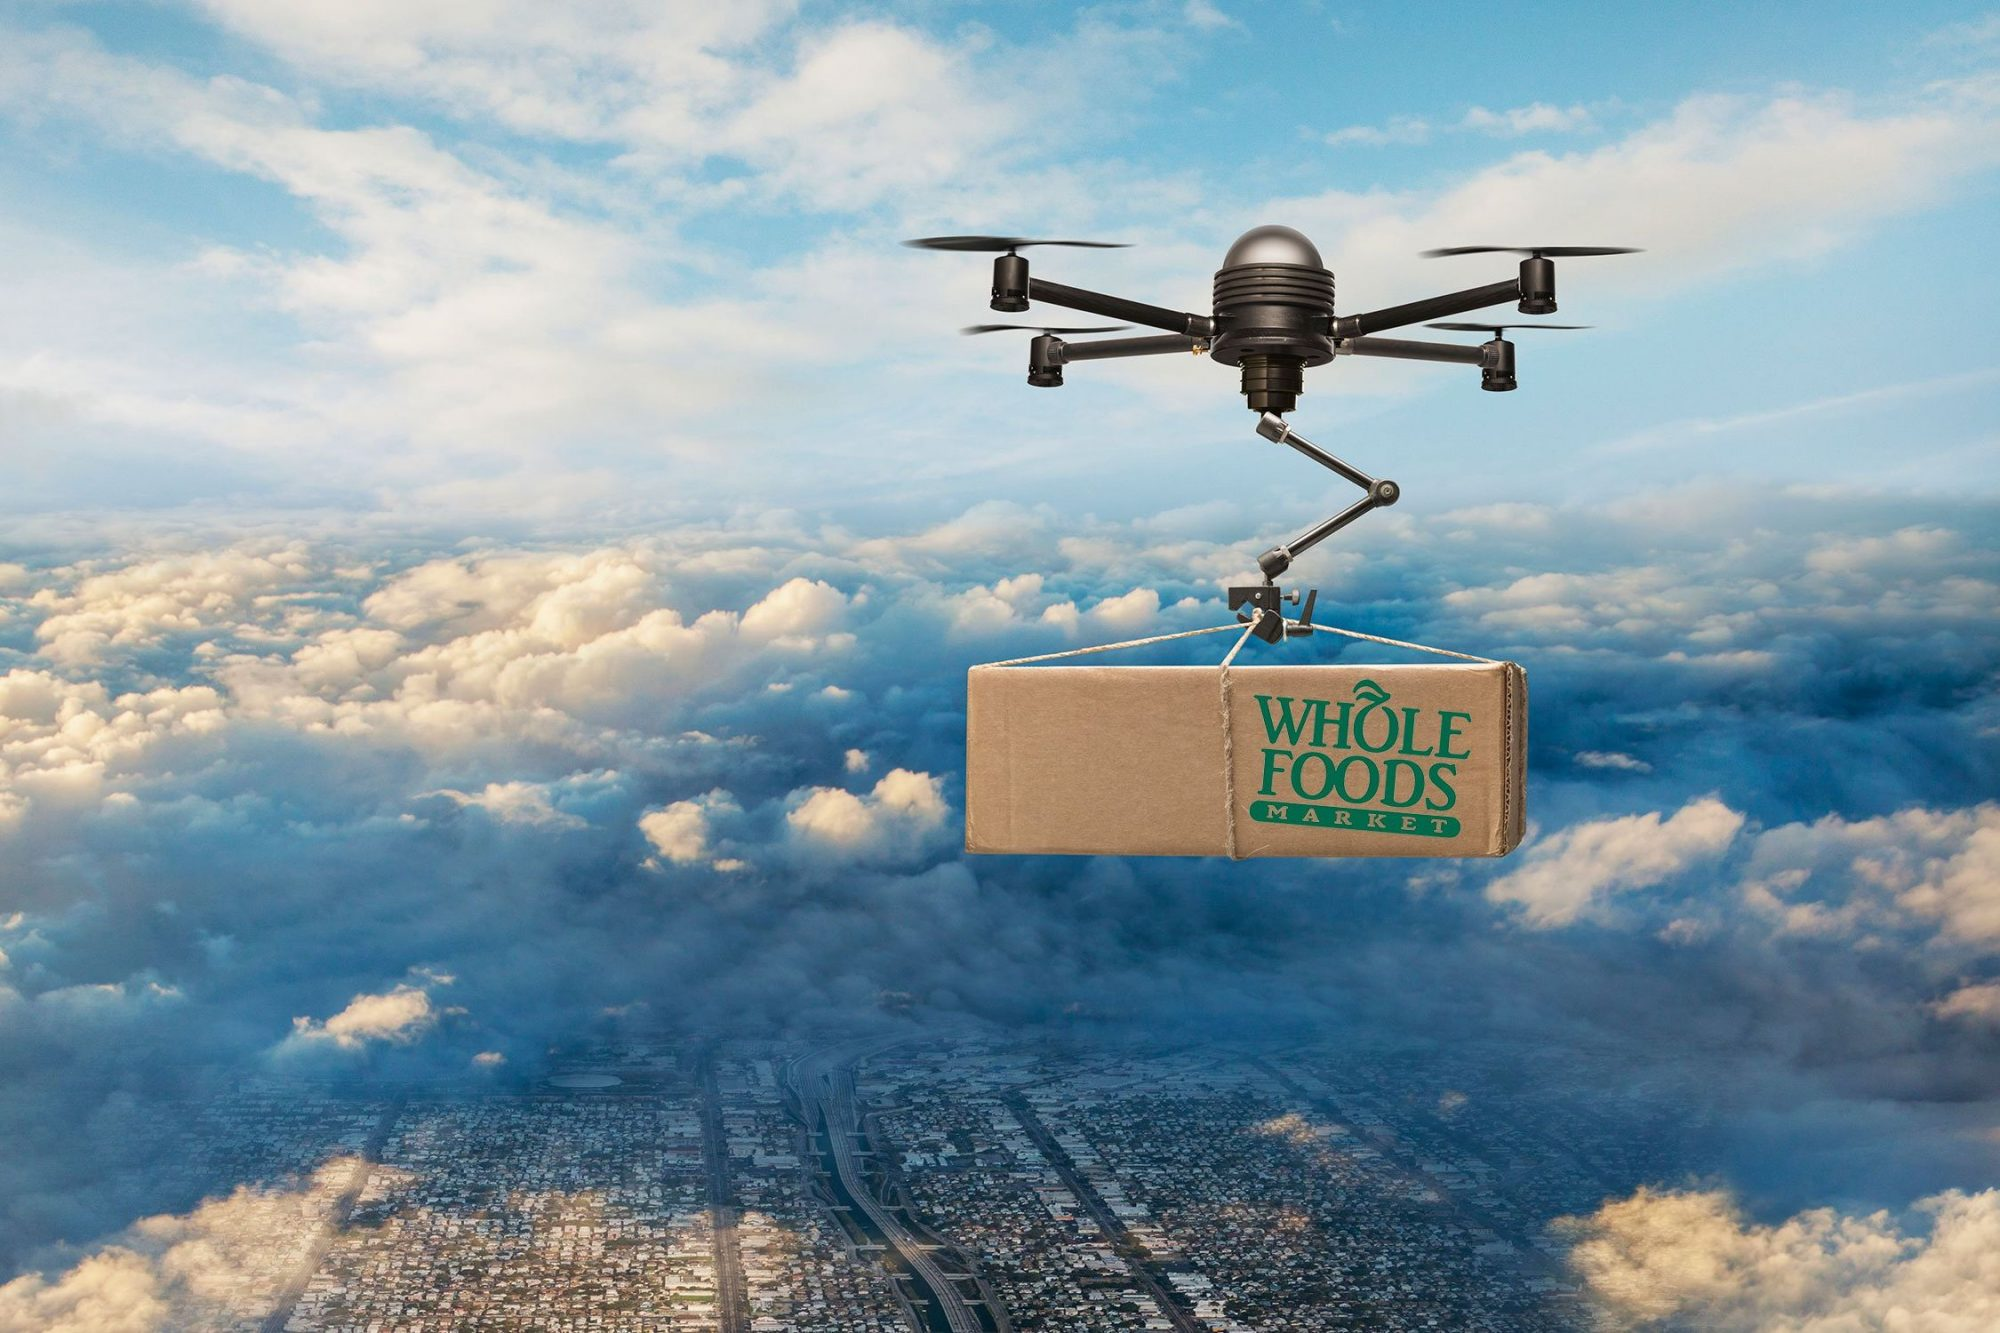 EC: We Can't Wait for Whole Foods to Start Drone Delivery